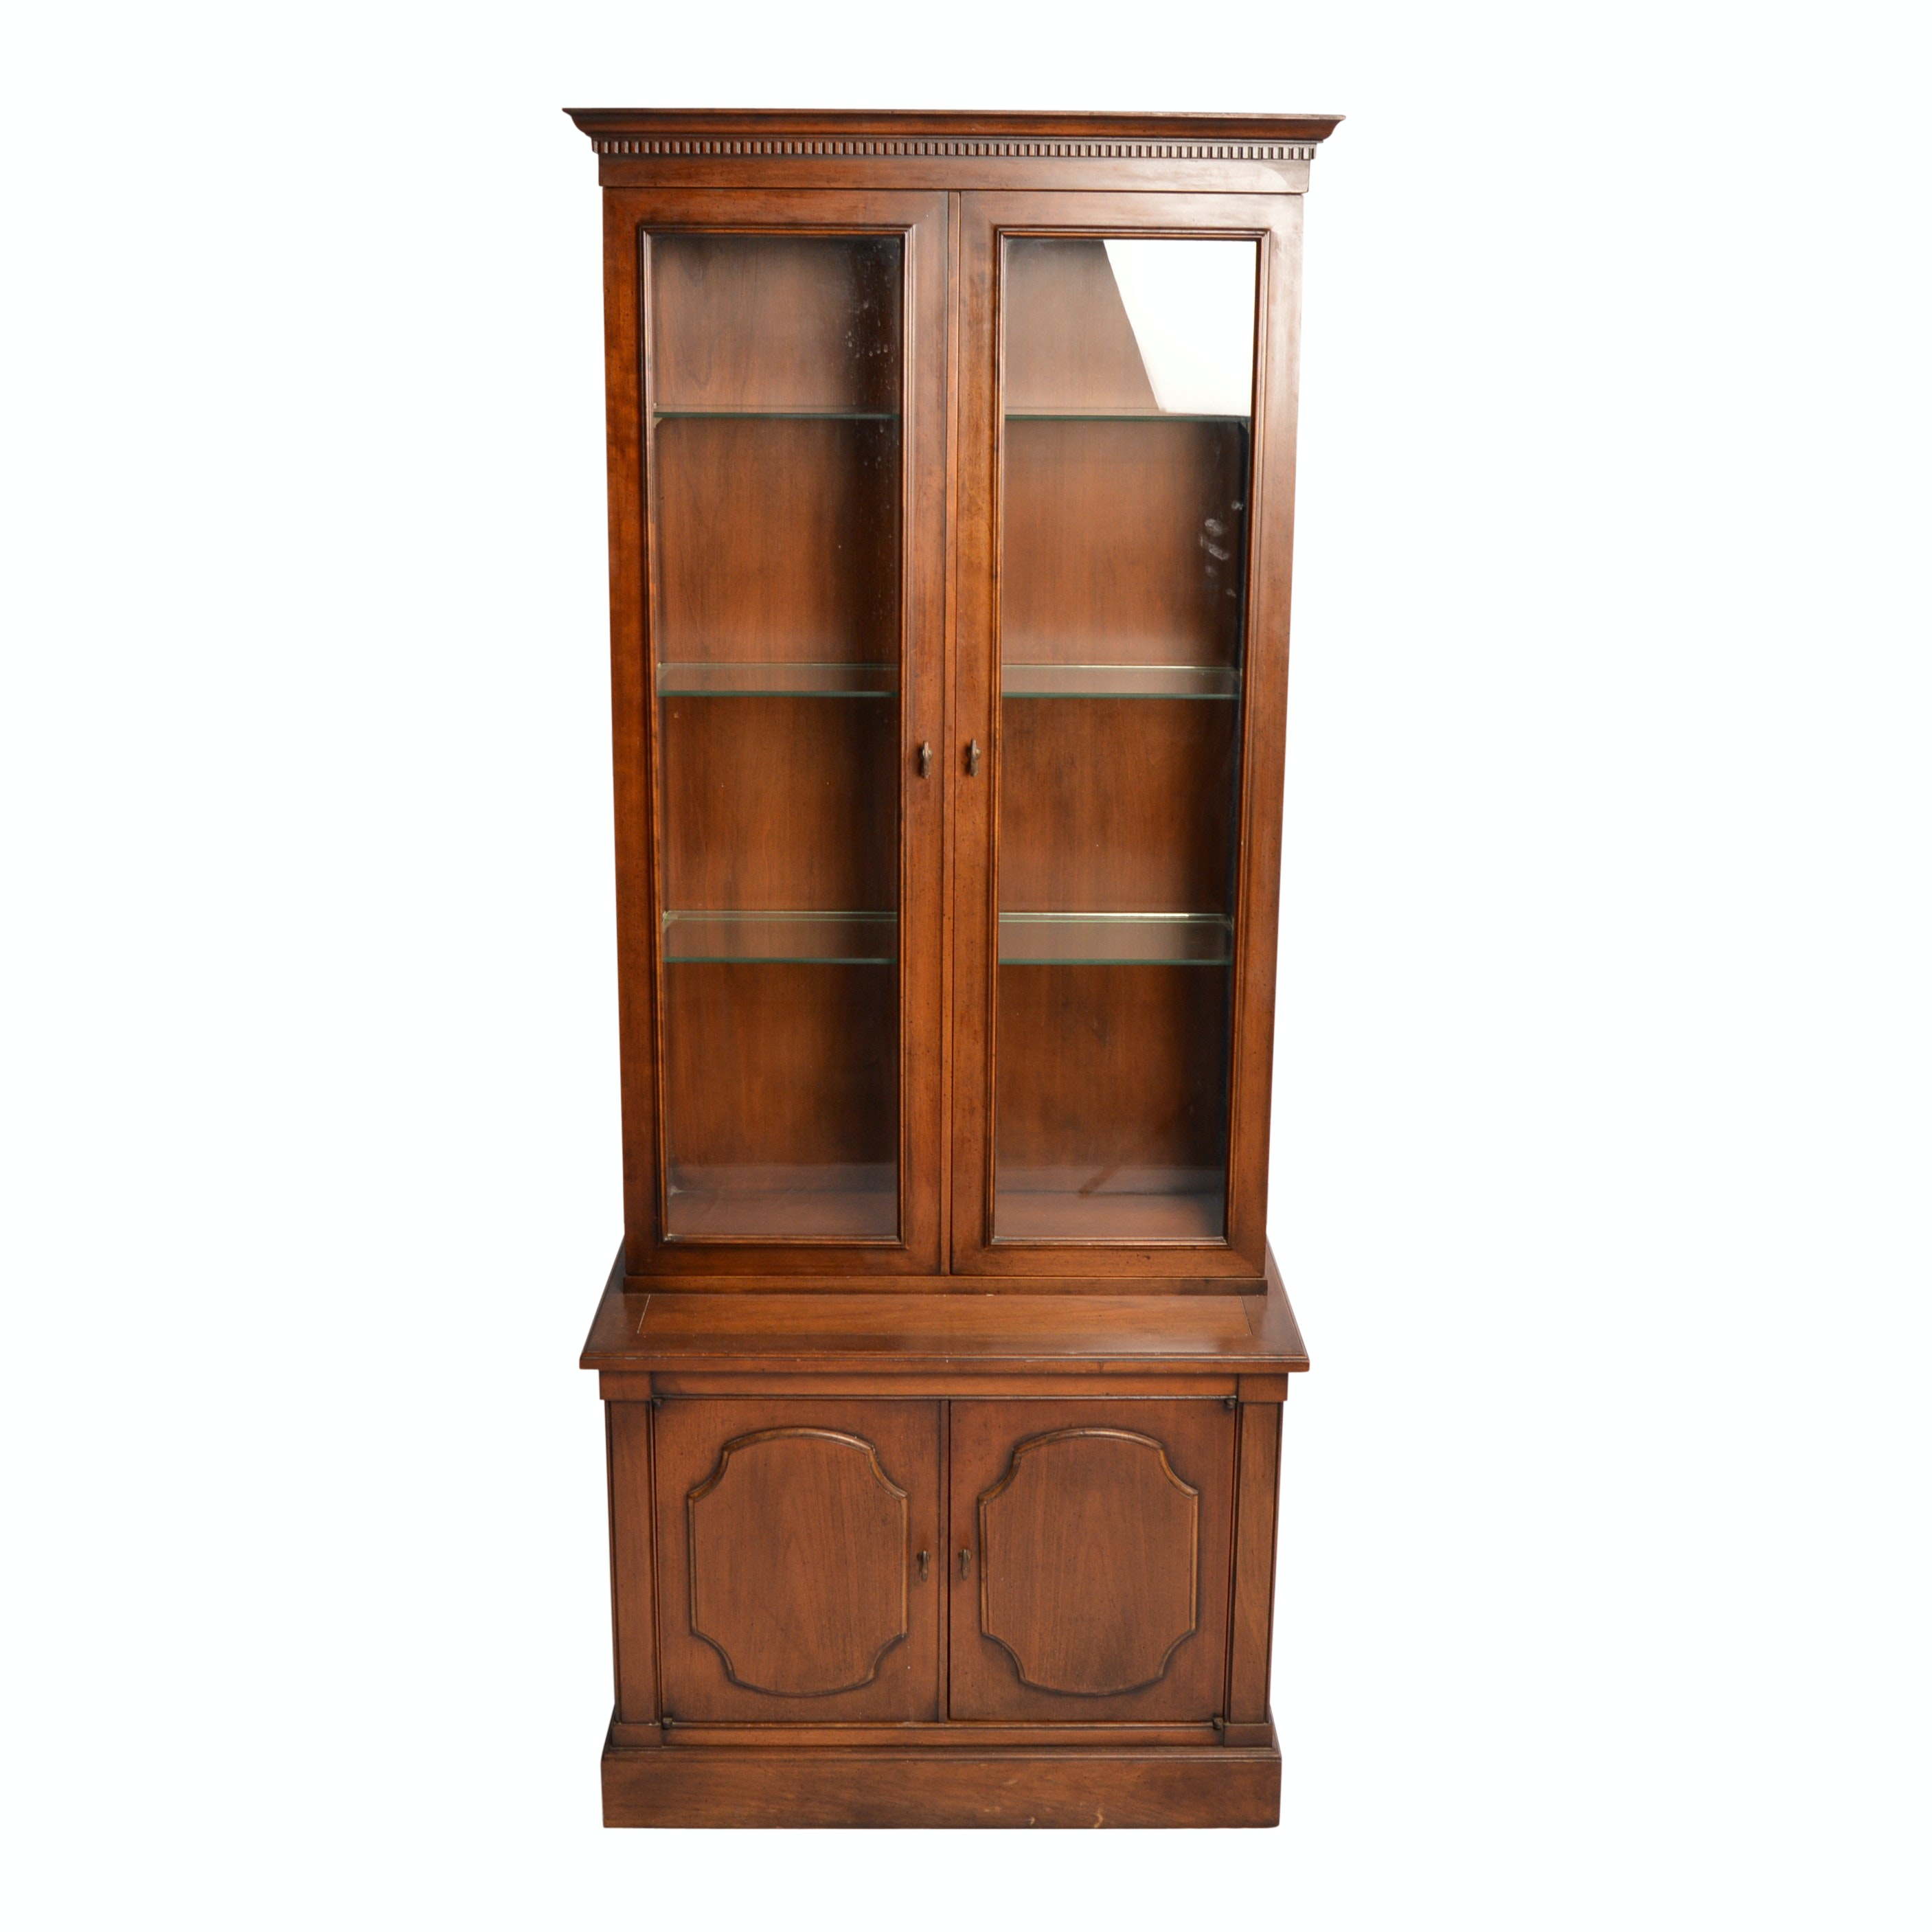 Vintage Lighted Display Cabinet with Record Storage